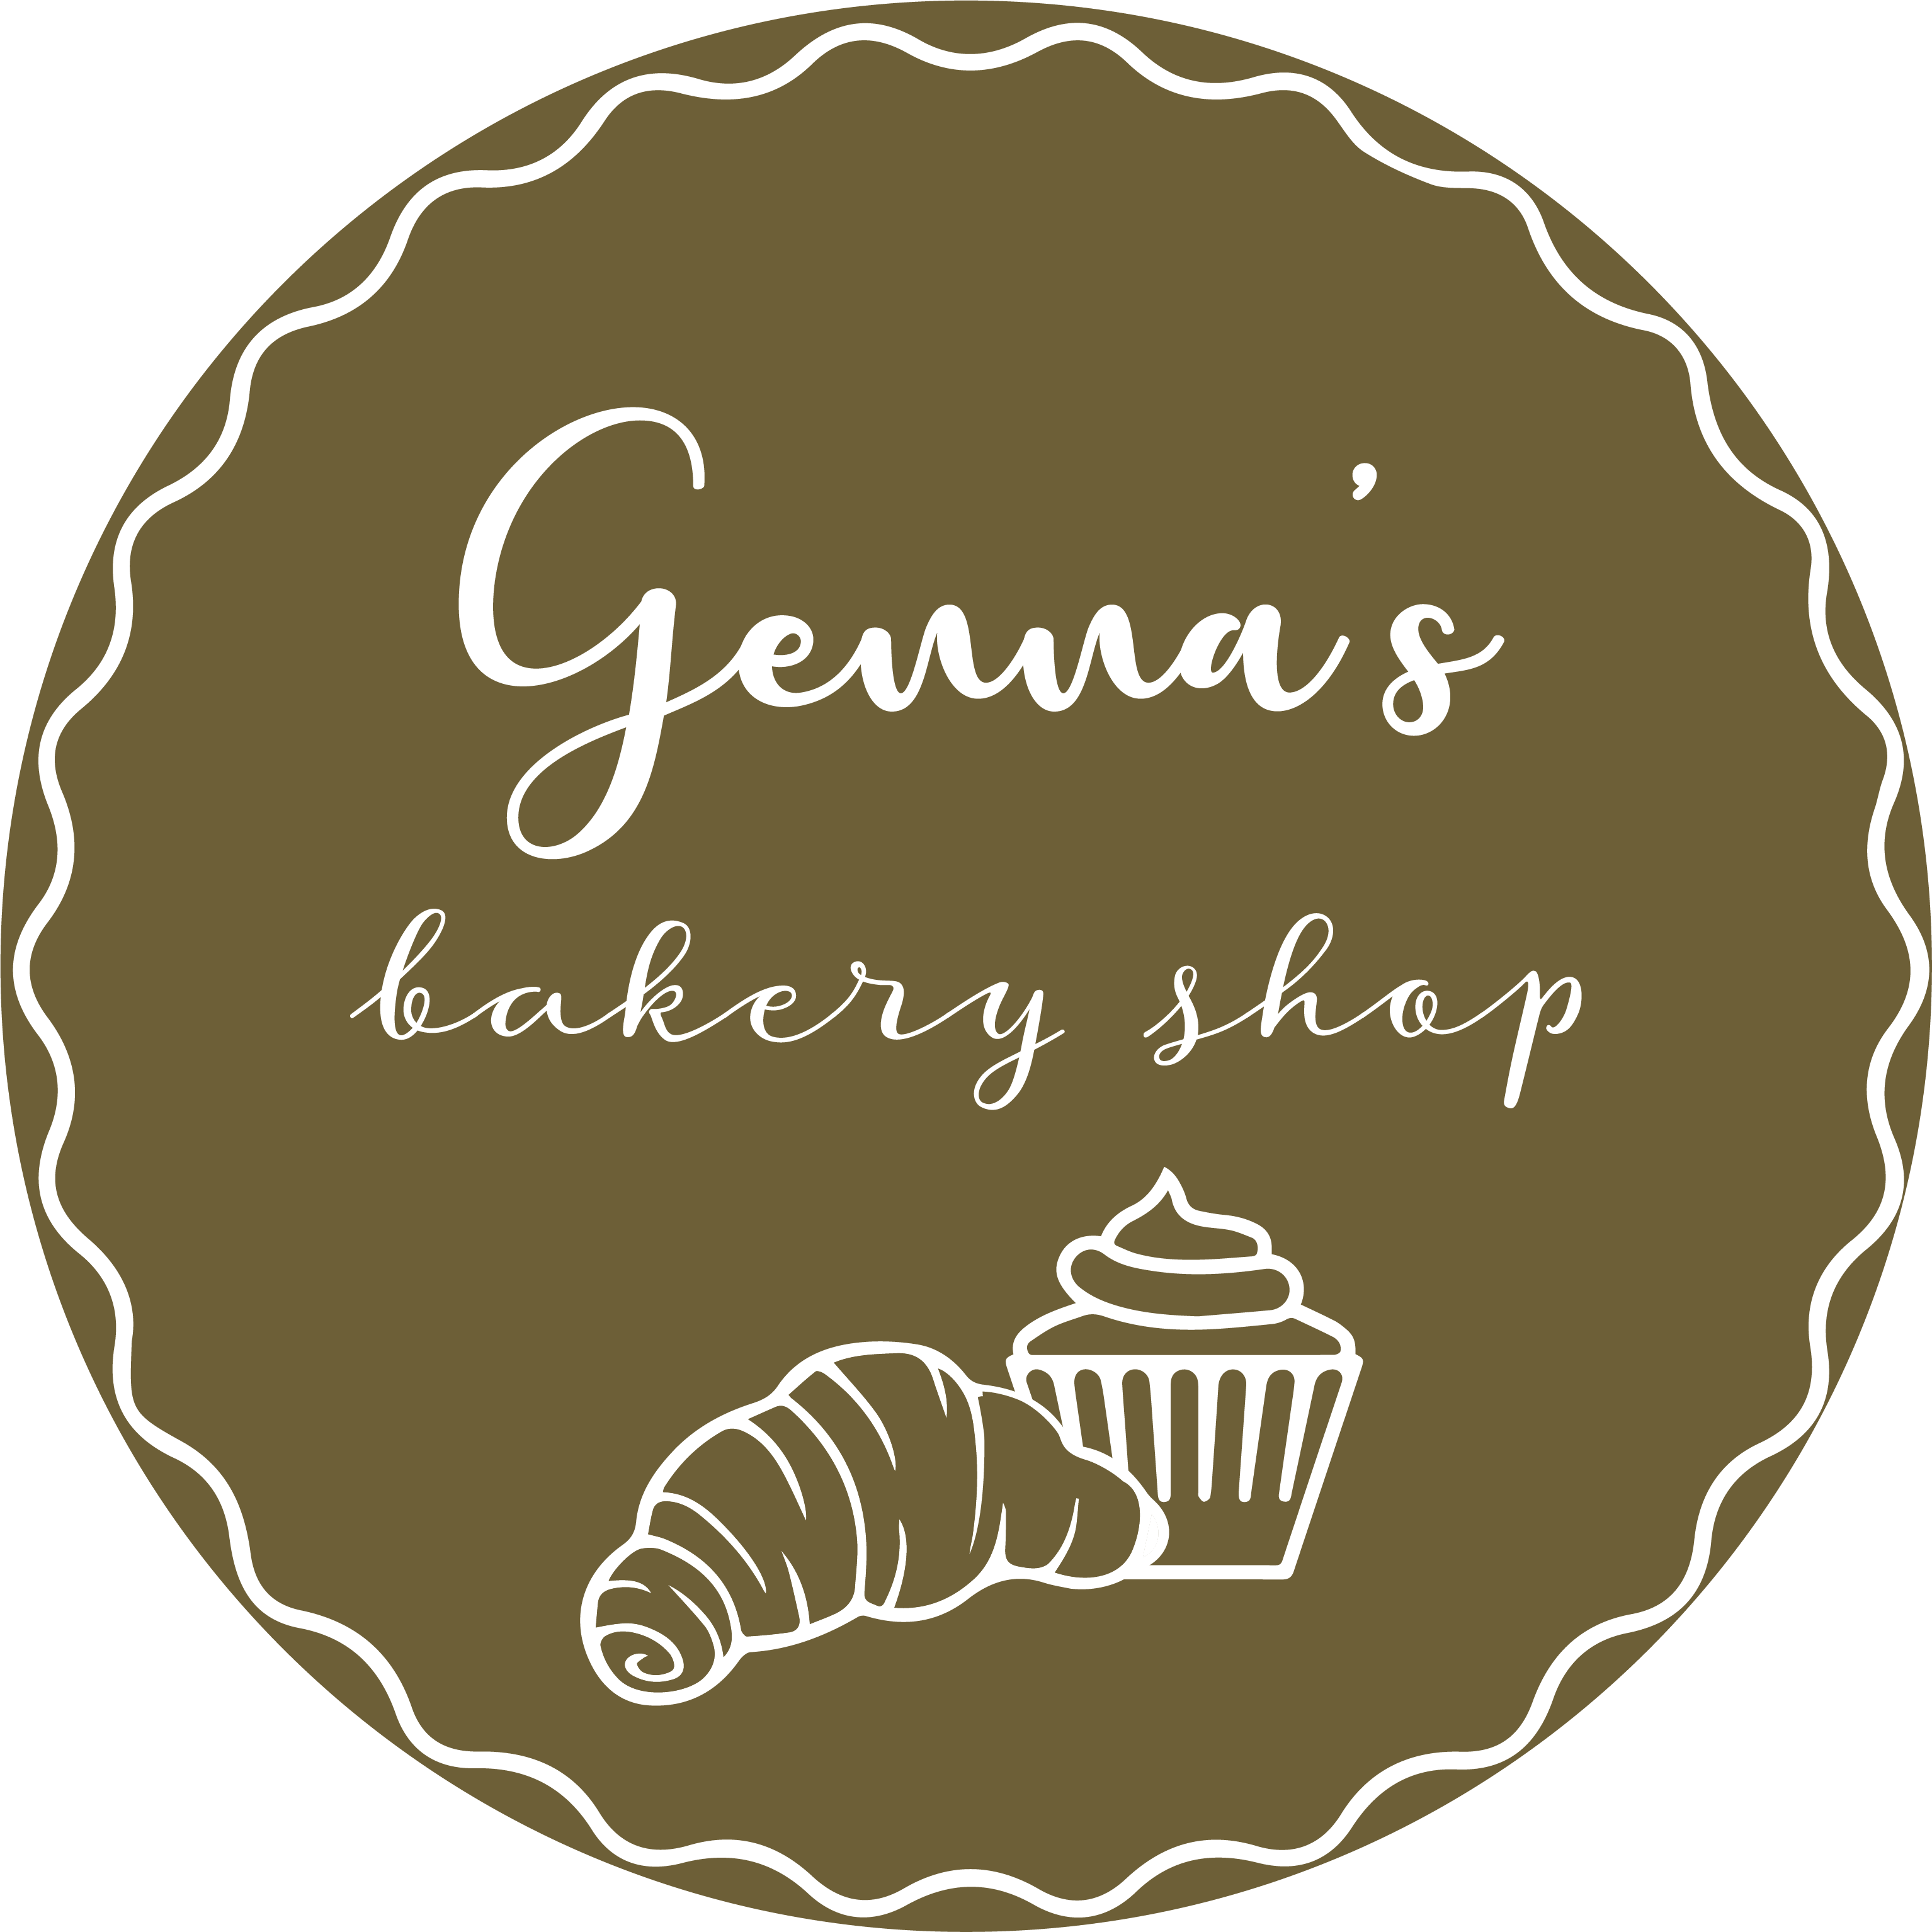 Genna´s Bakery Shop